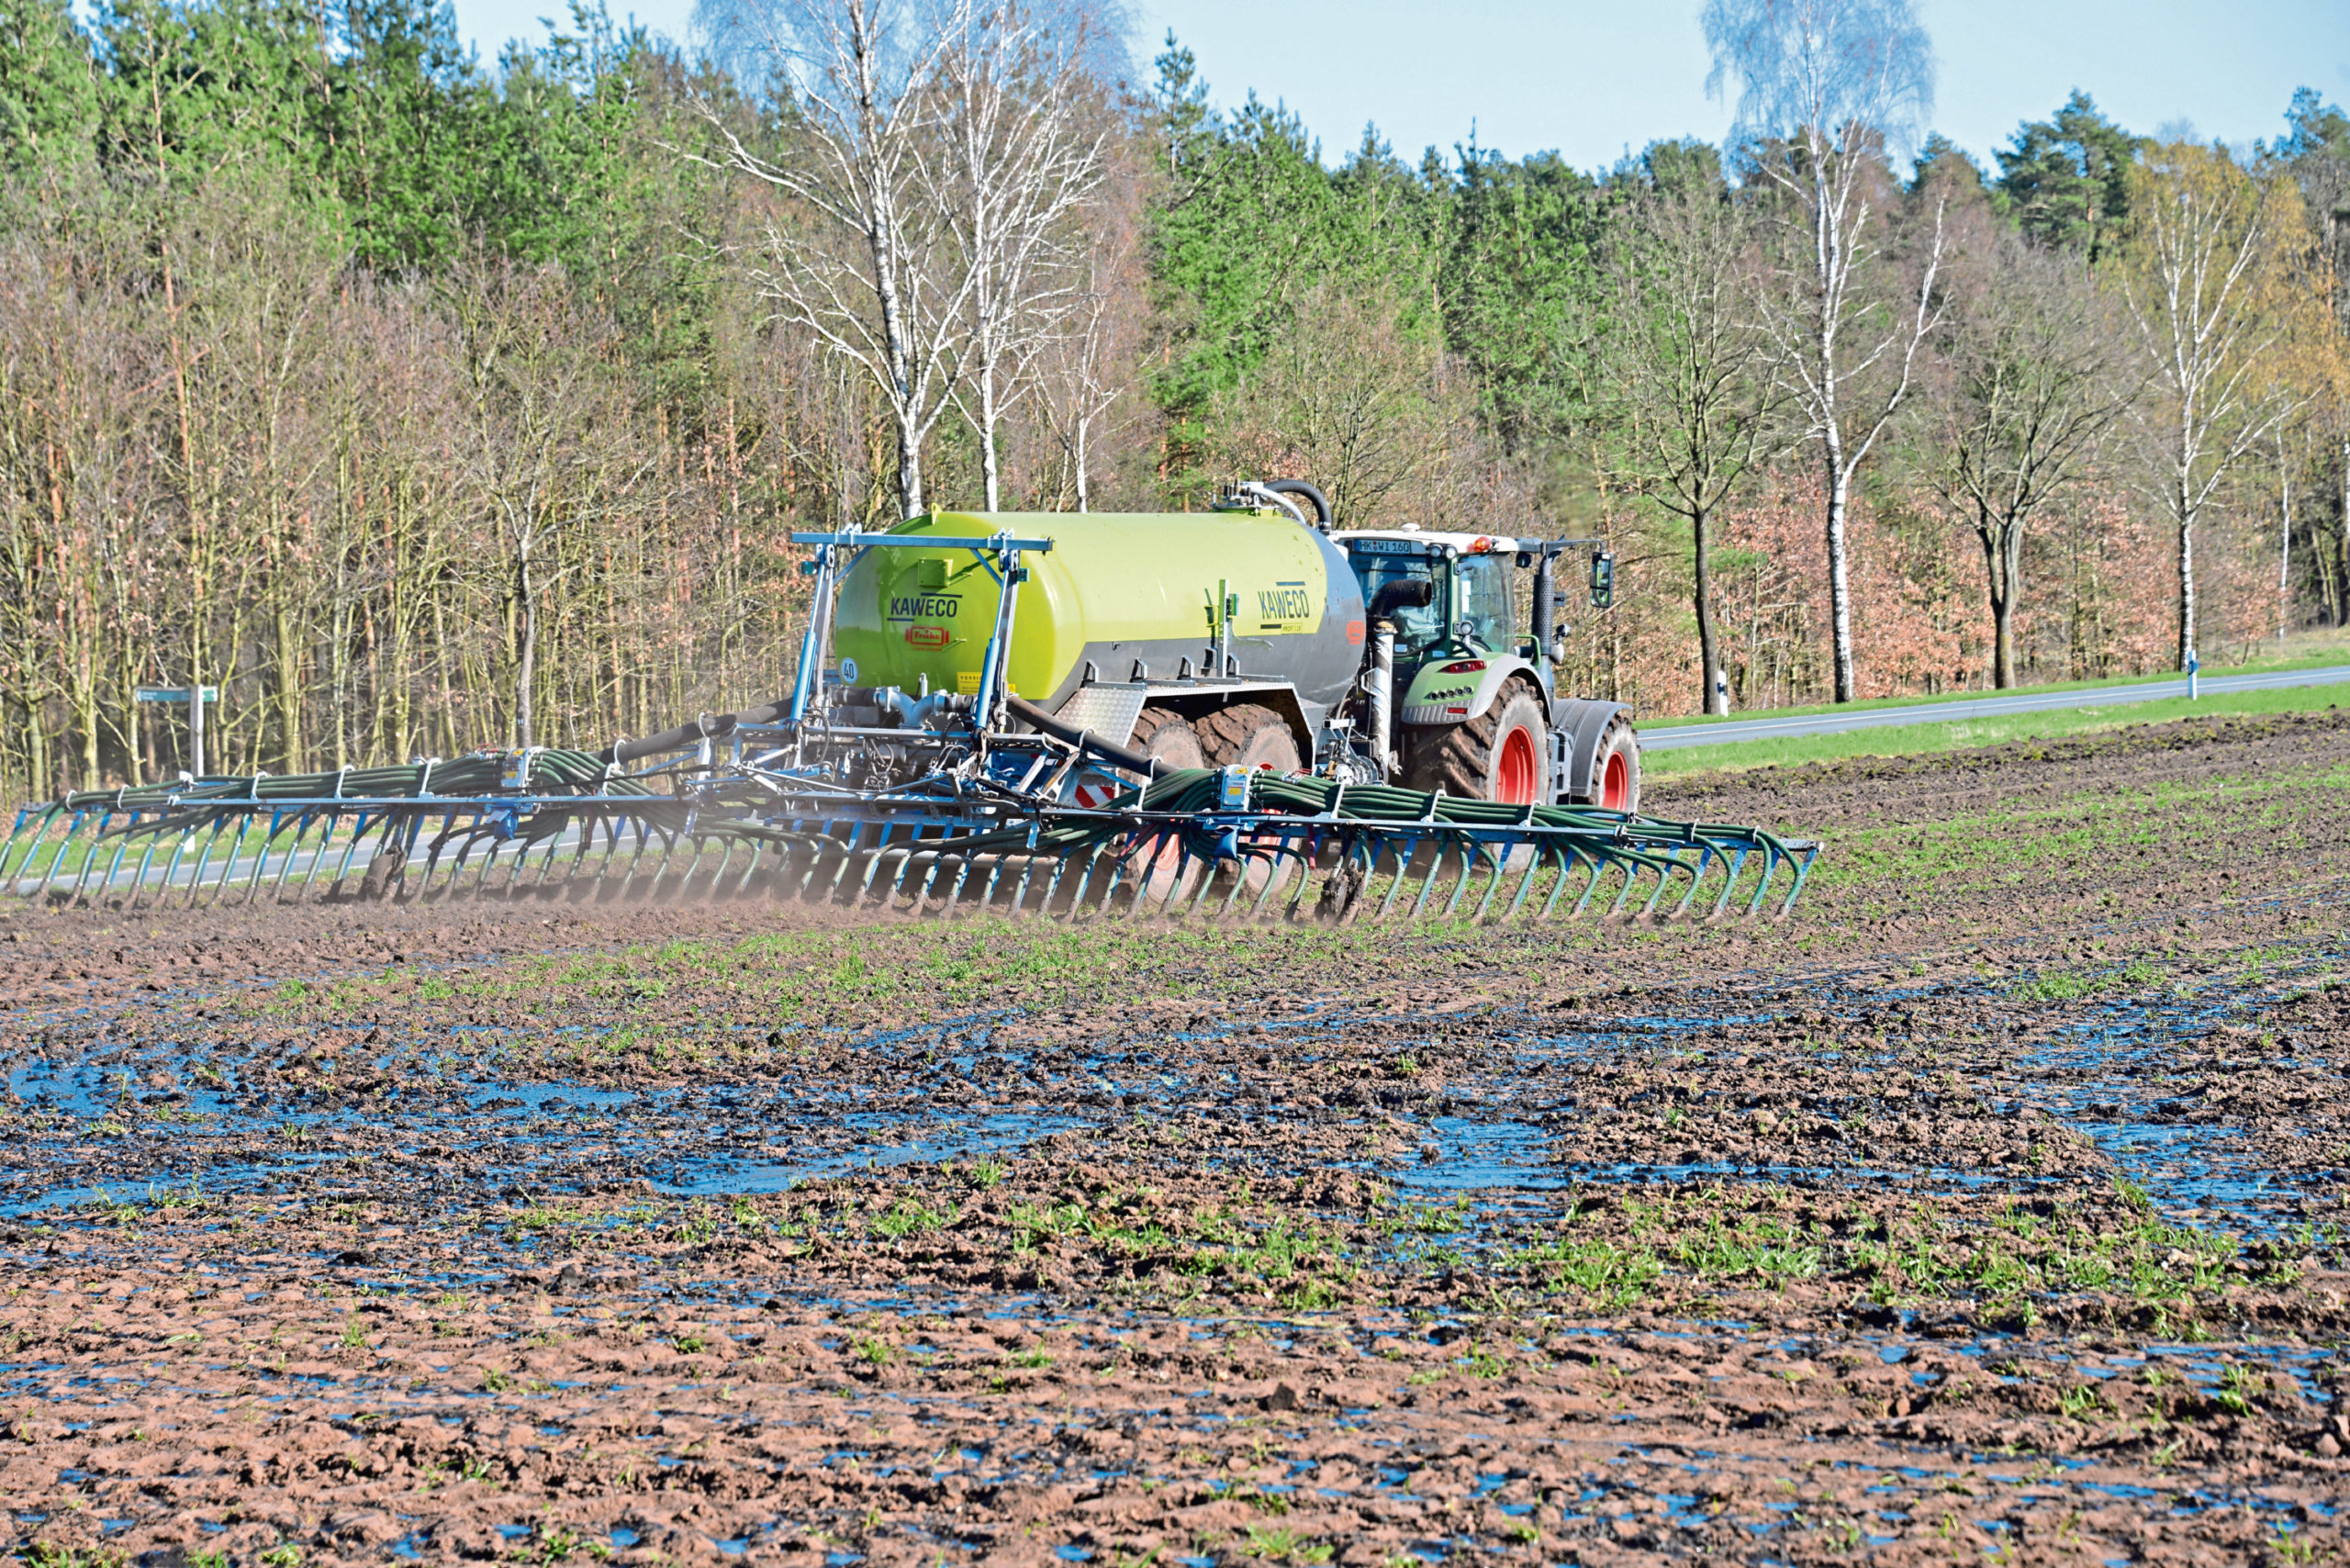 The distilling industry is worried some Scottish farmers might end up making their land unsuitable for growing malted barley.